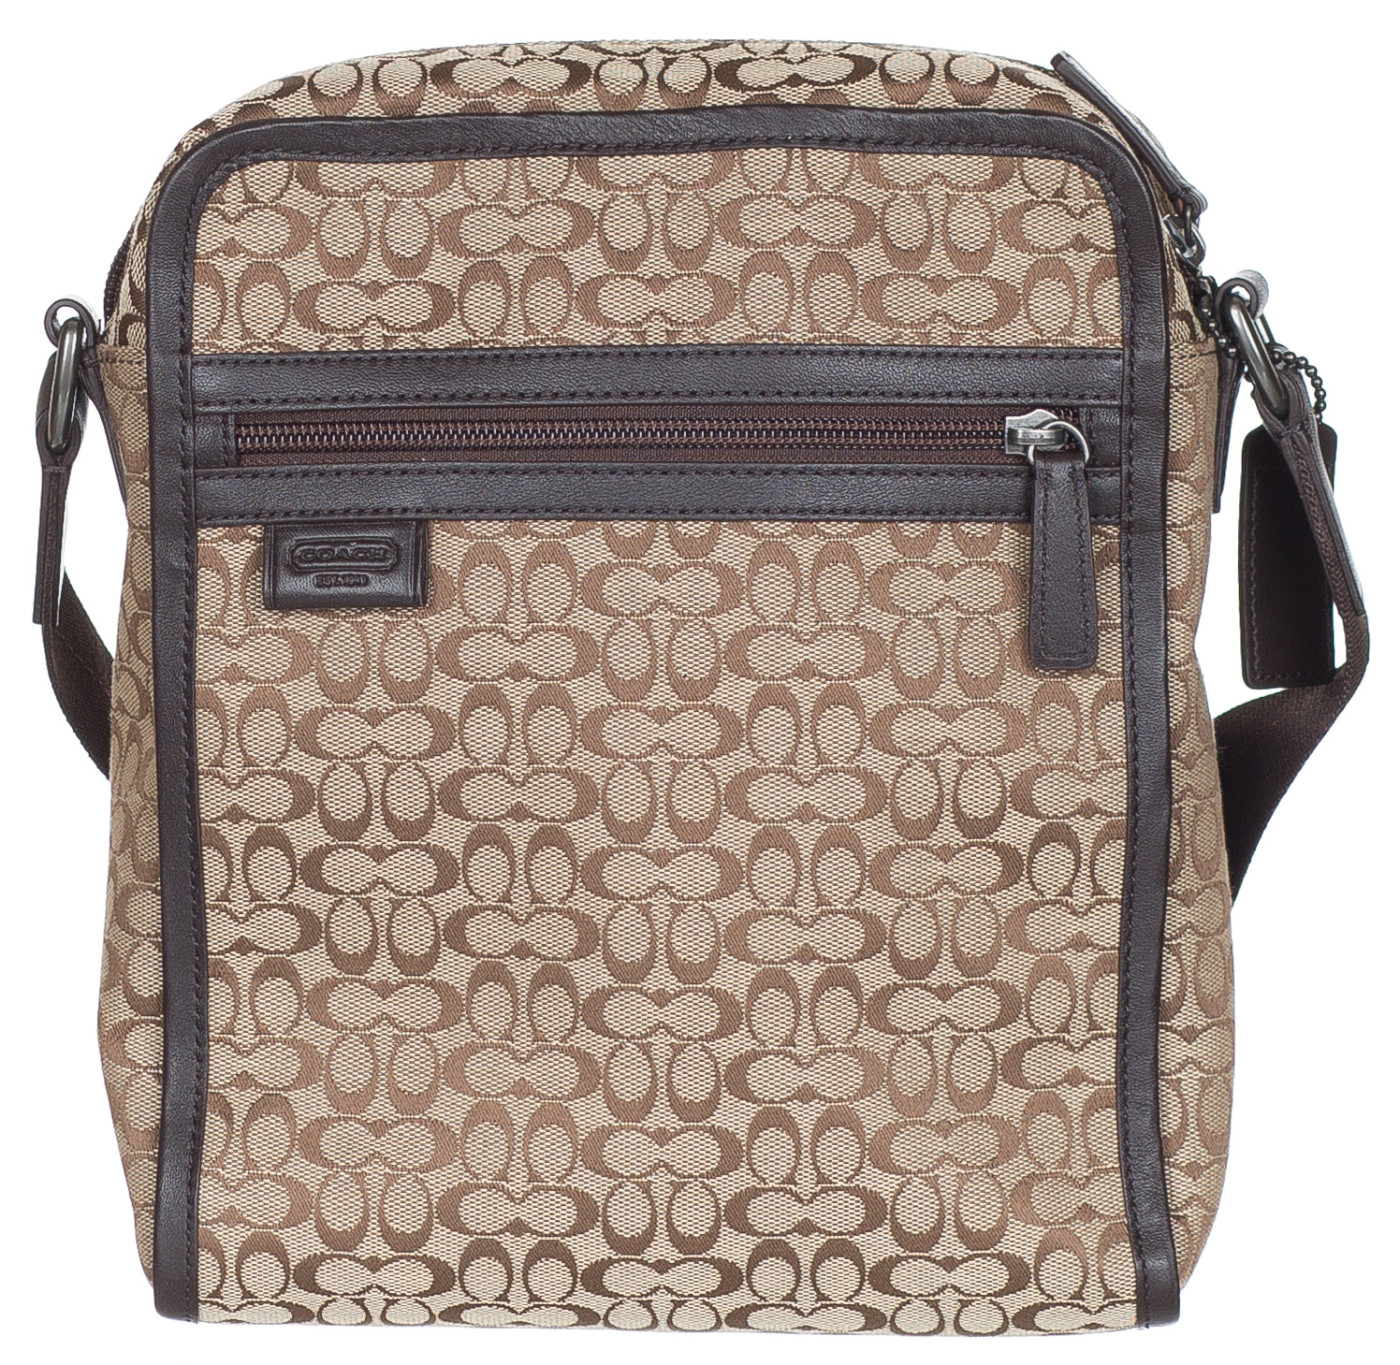 Coach Khaki Brown Jacquard Canvas Leather Messenger Shoulder Flight Bag